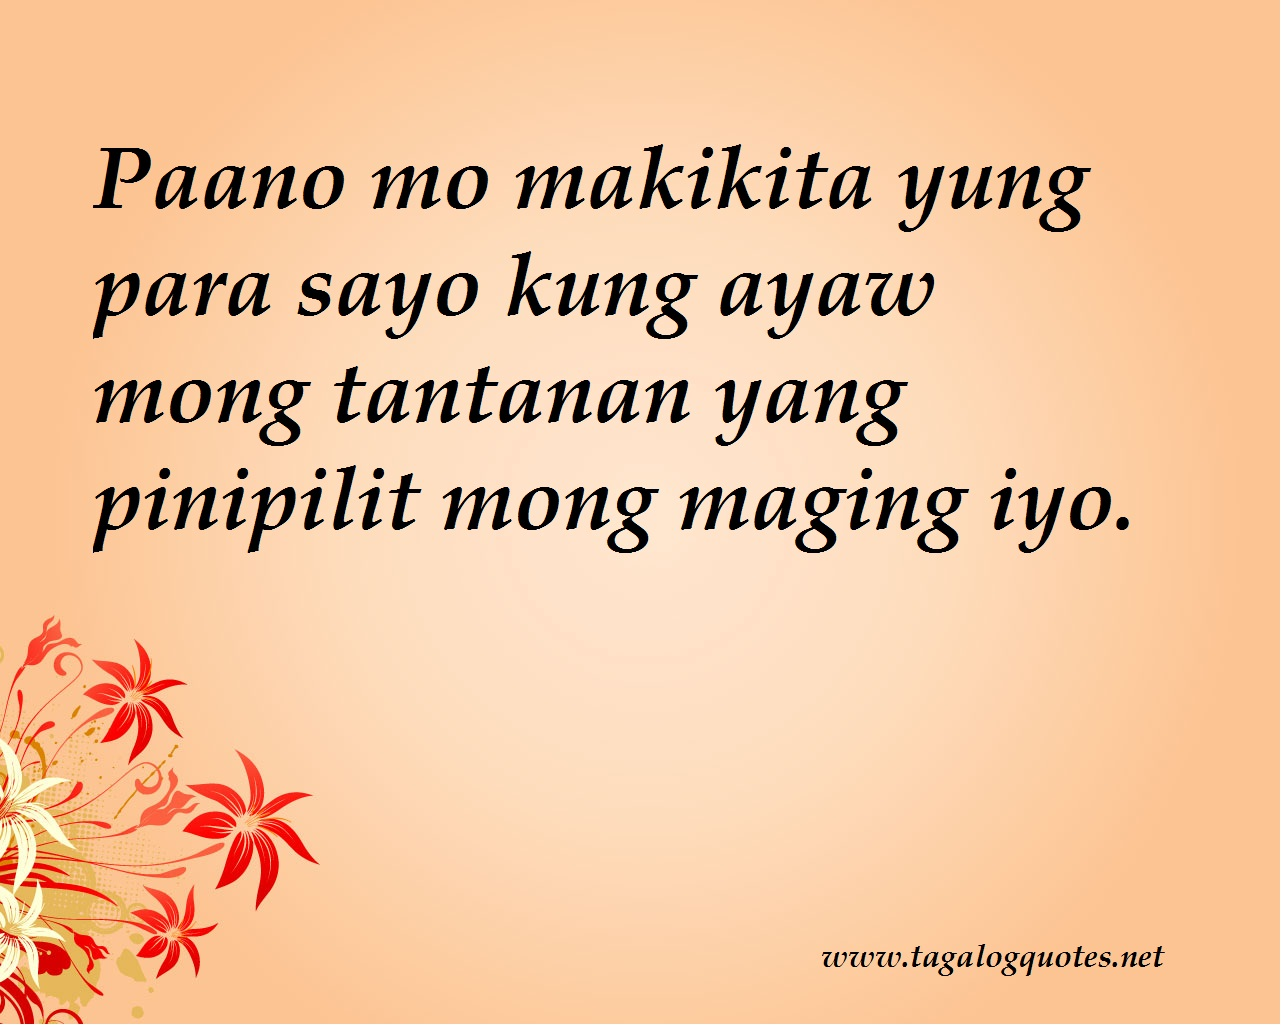 tagalog love quotes images